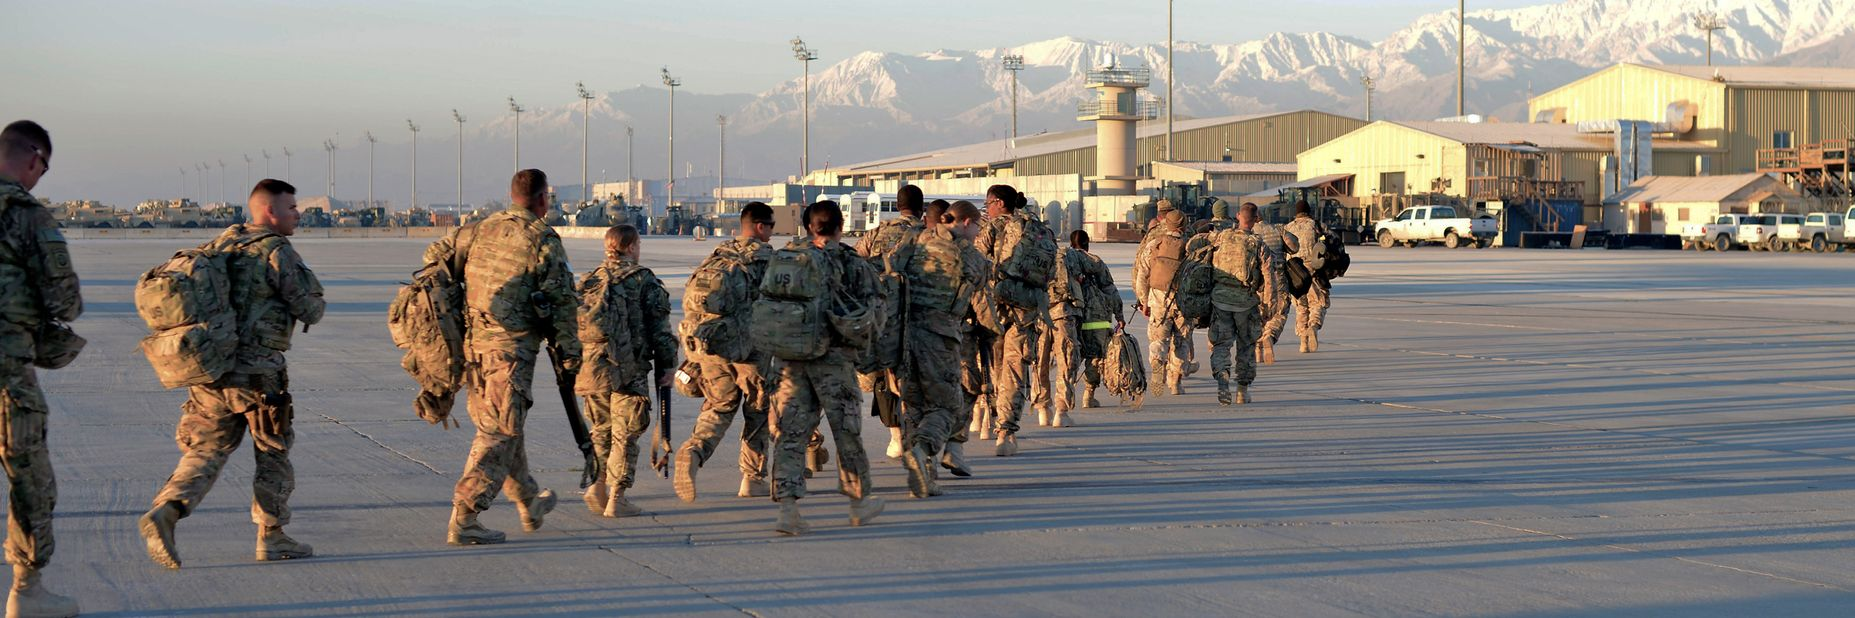 Troops leaving aircraft